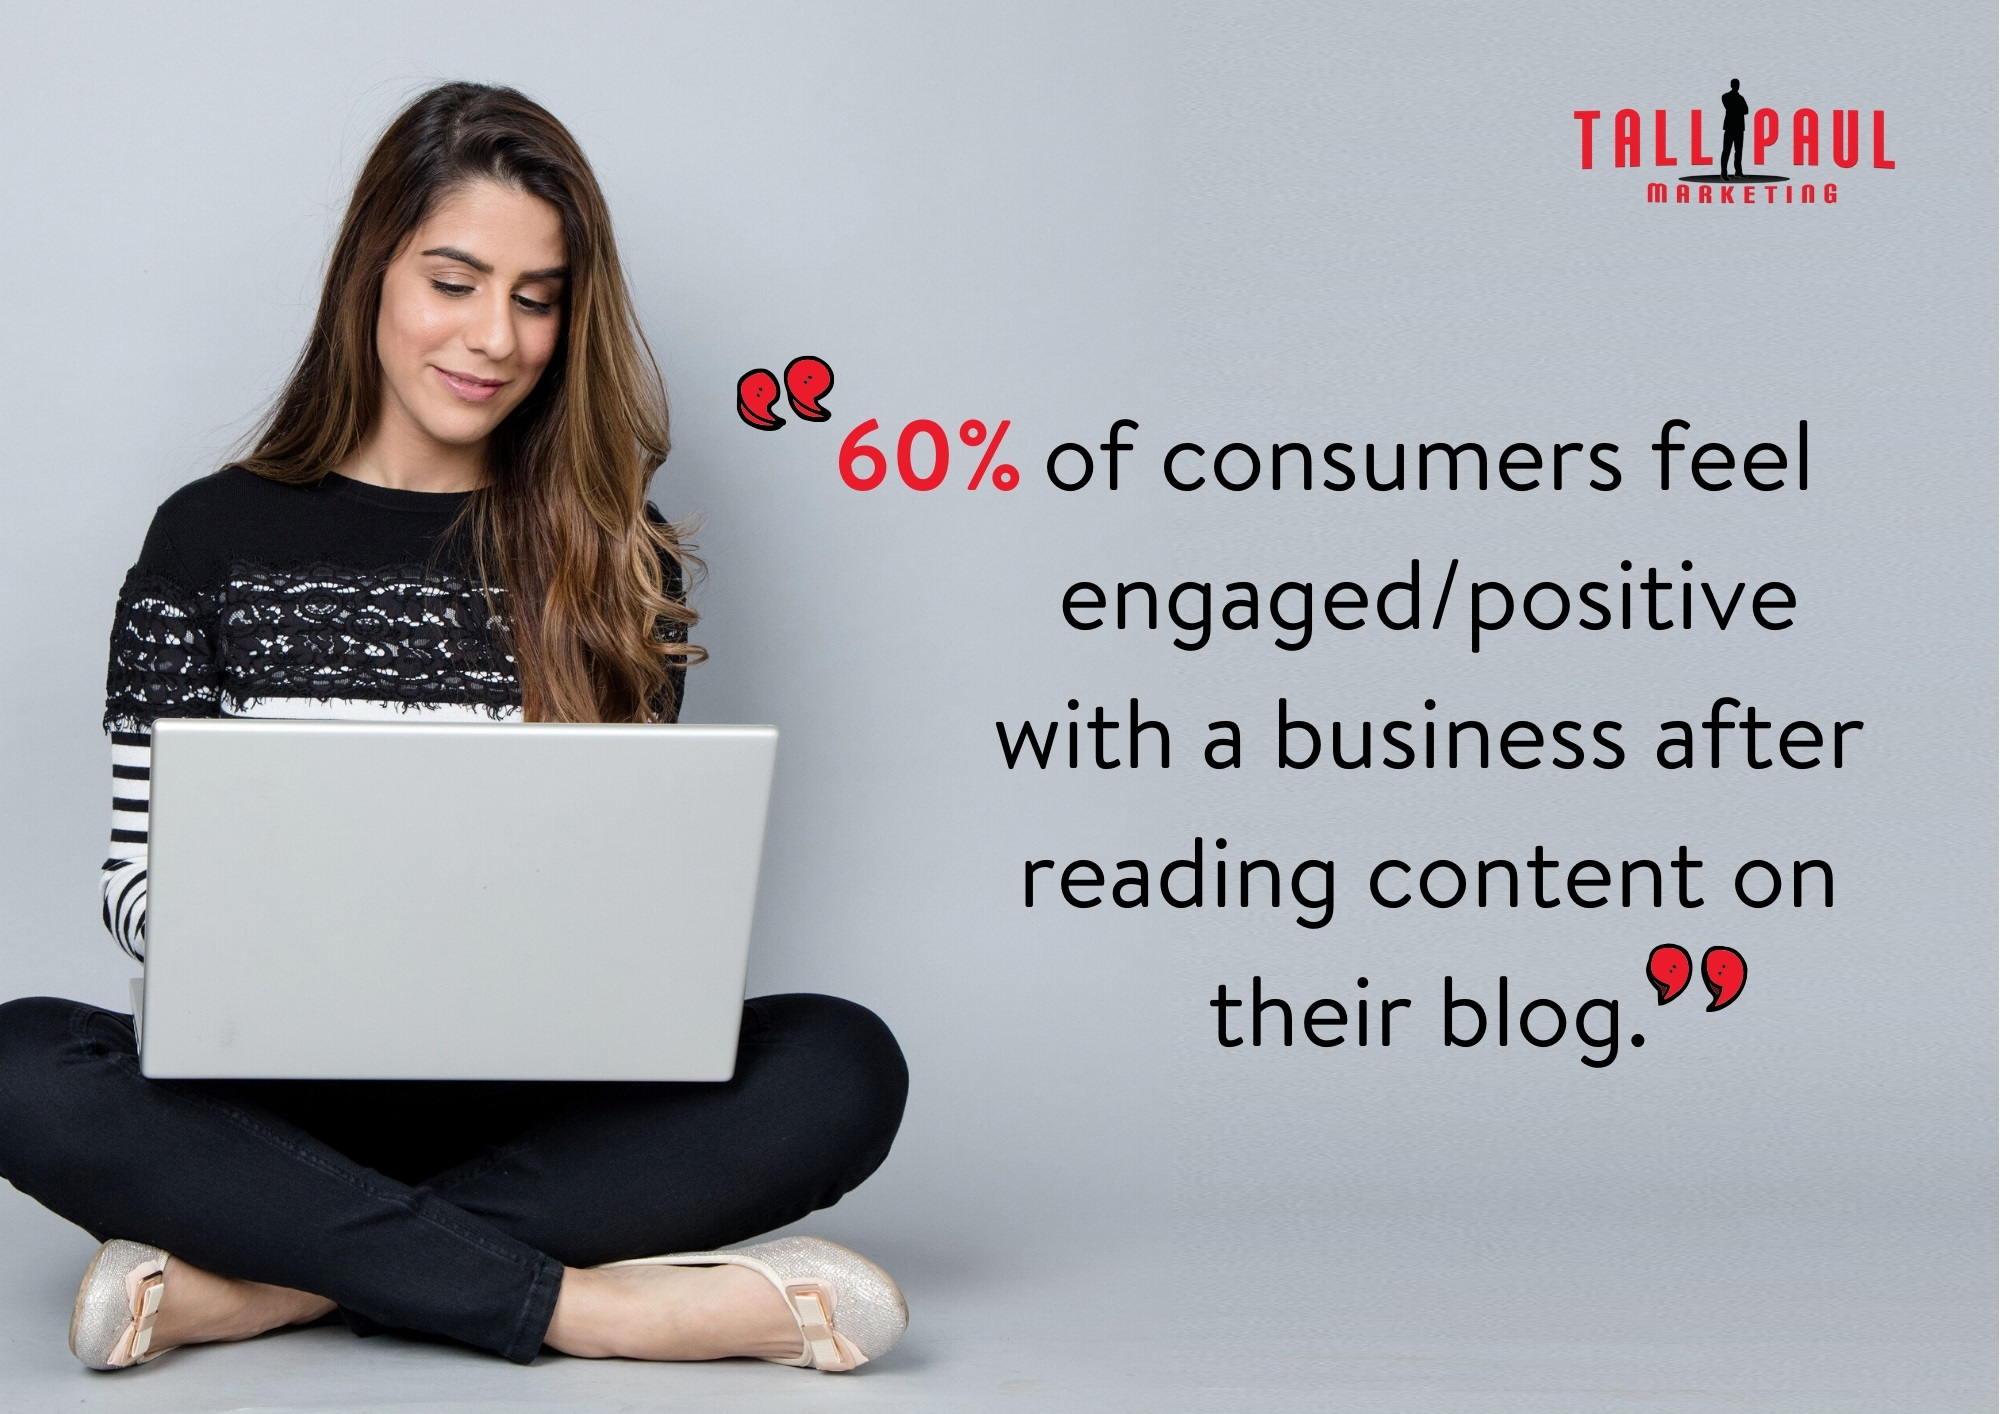 60% of consumers feel engaged/positive after reading blog content - Tall Paul Marketing - NI Copywriter